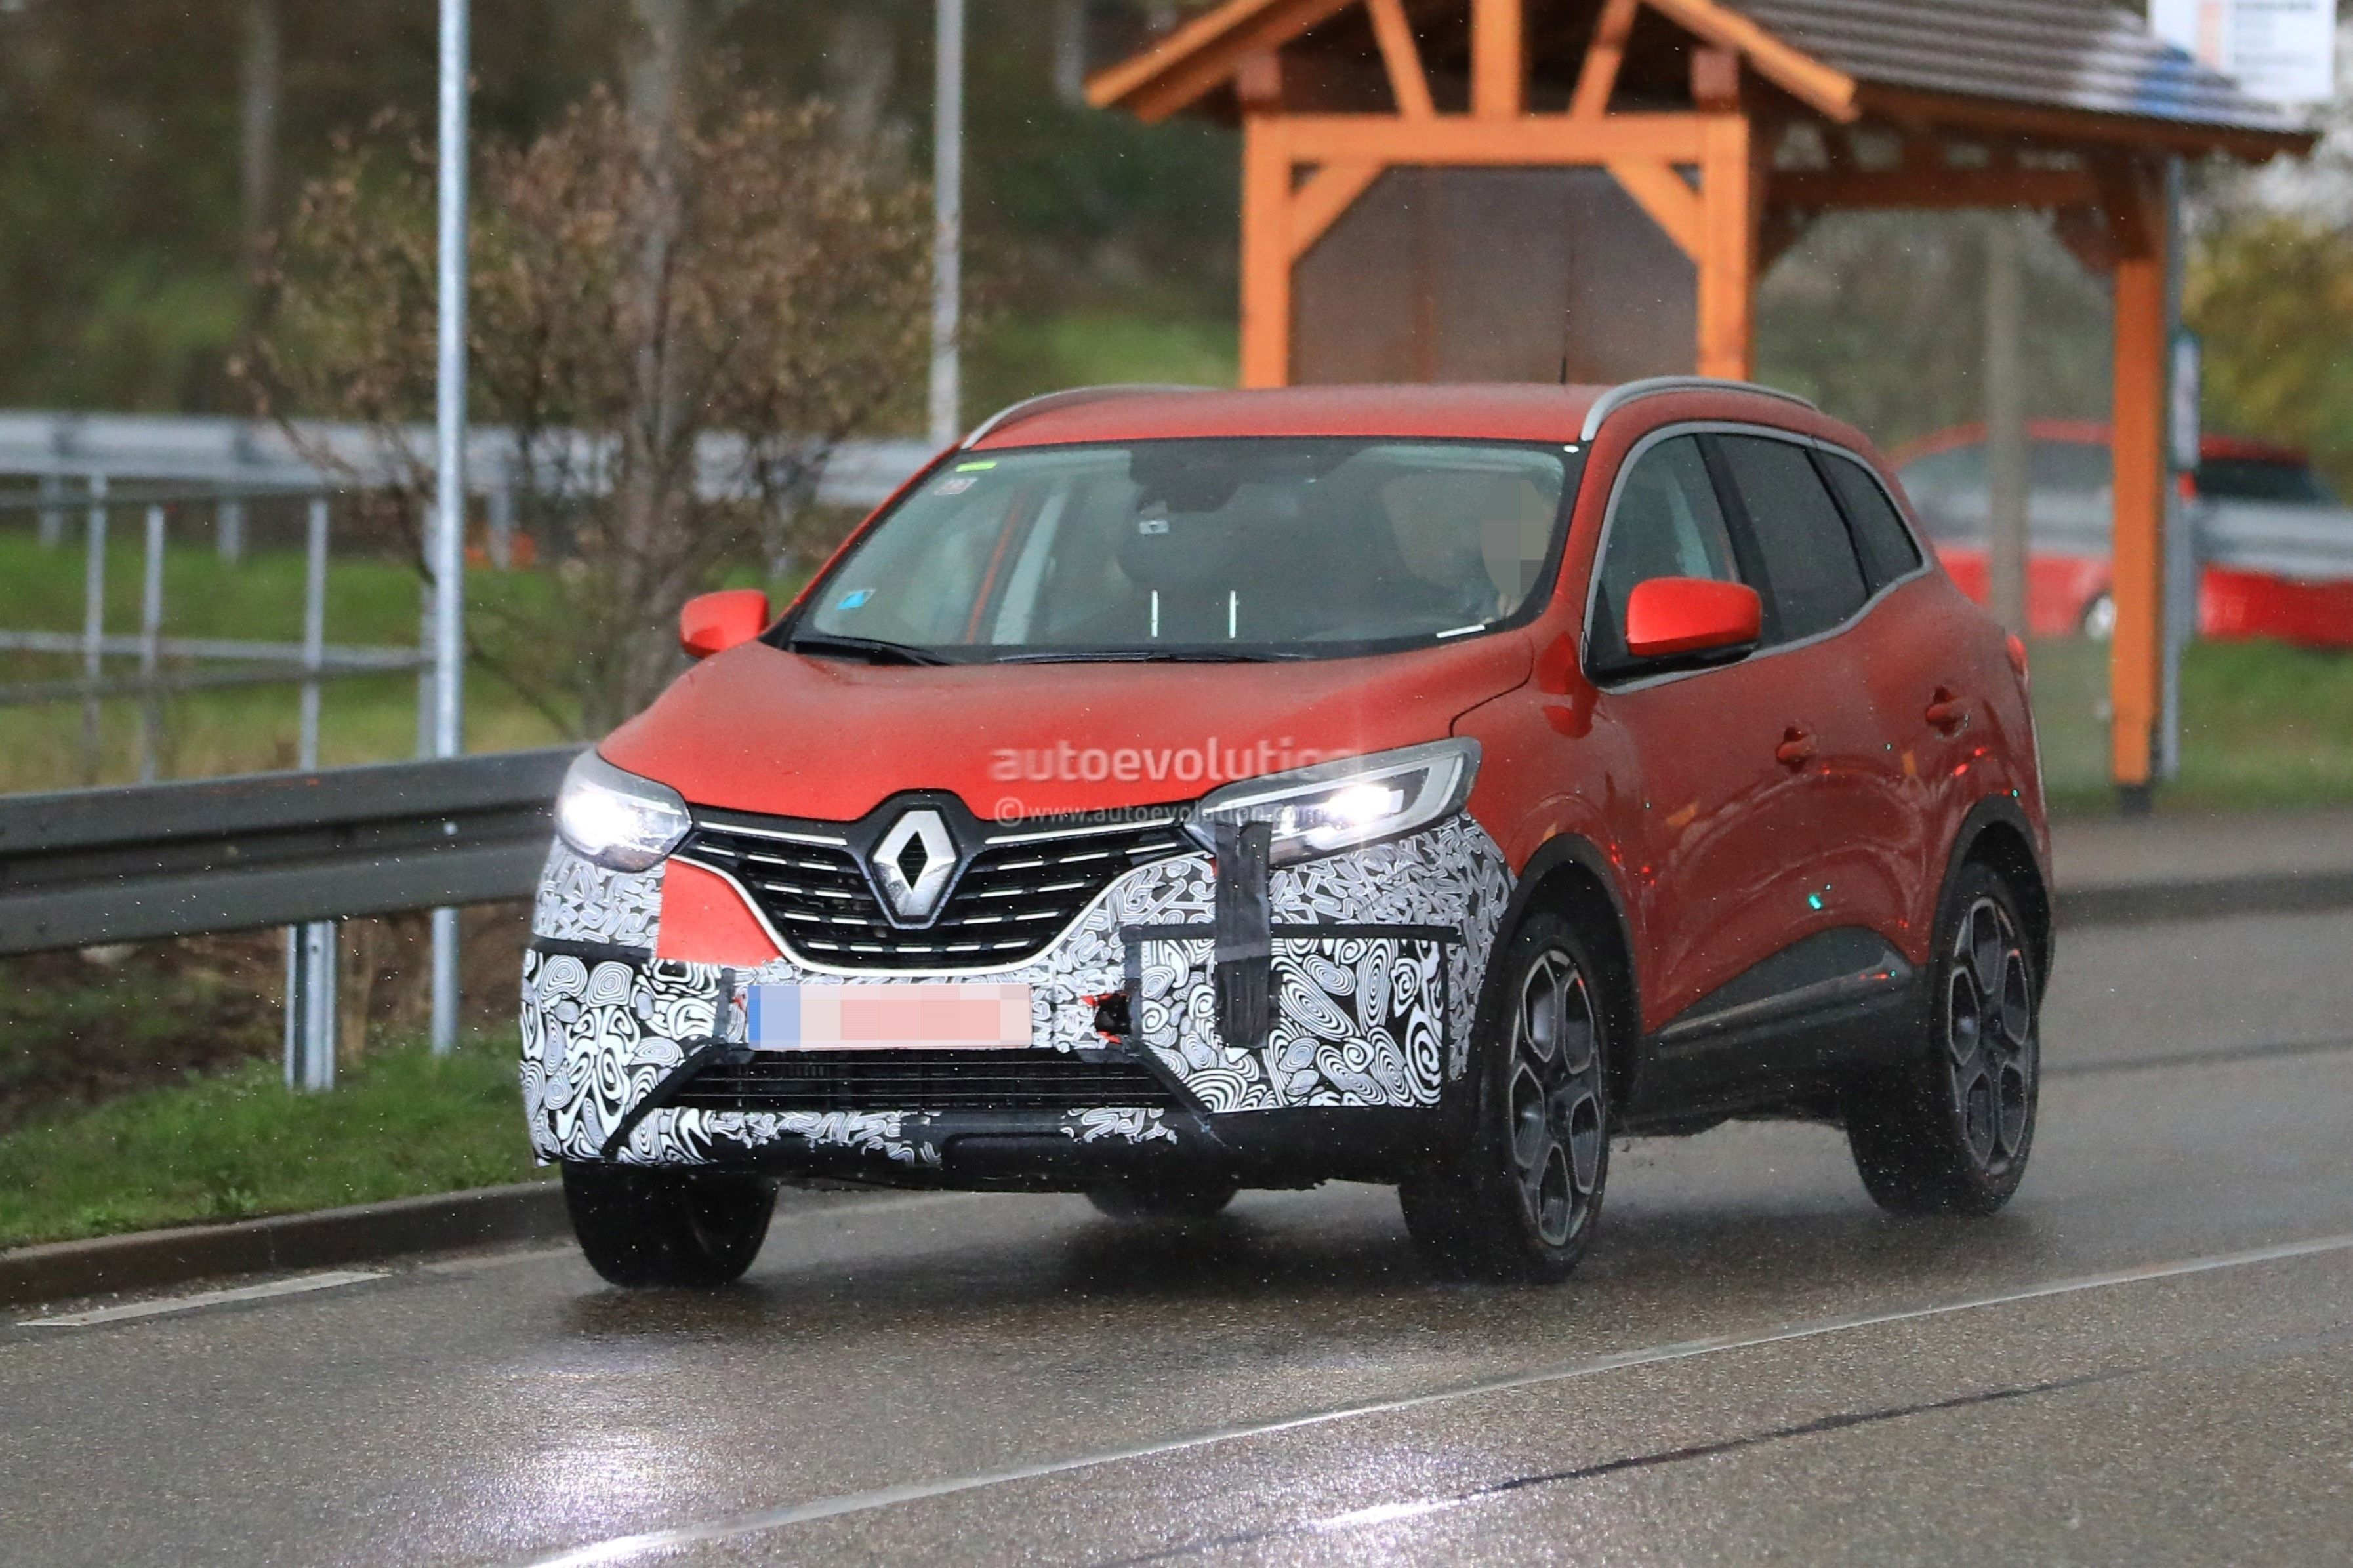 2020 Renault Megane 2020 Renault Megane Neuer Renault Megane 2020 New Renault Megane 2020 Nouvelle Renault Megane 2020 Novo R Nissan Renault Nissan March